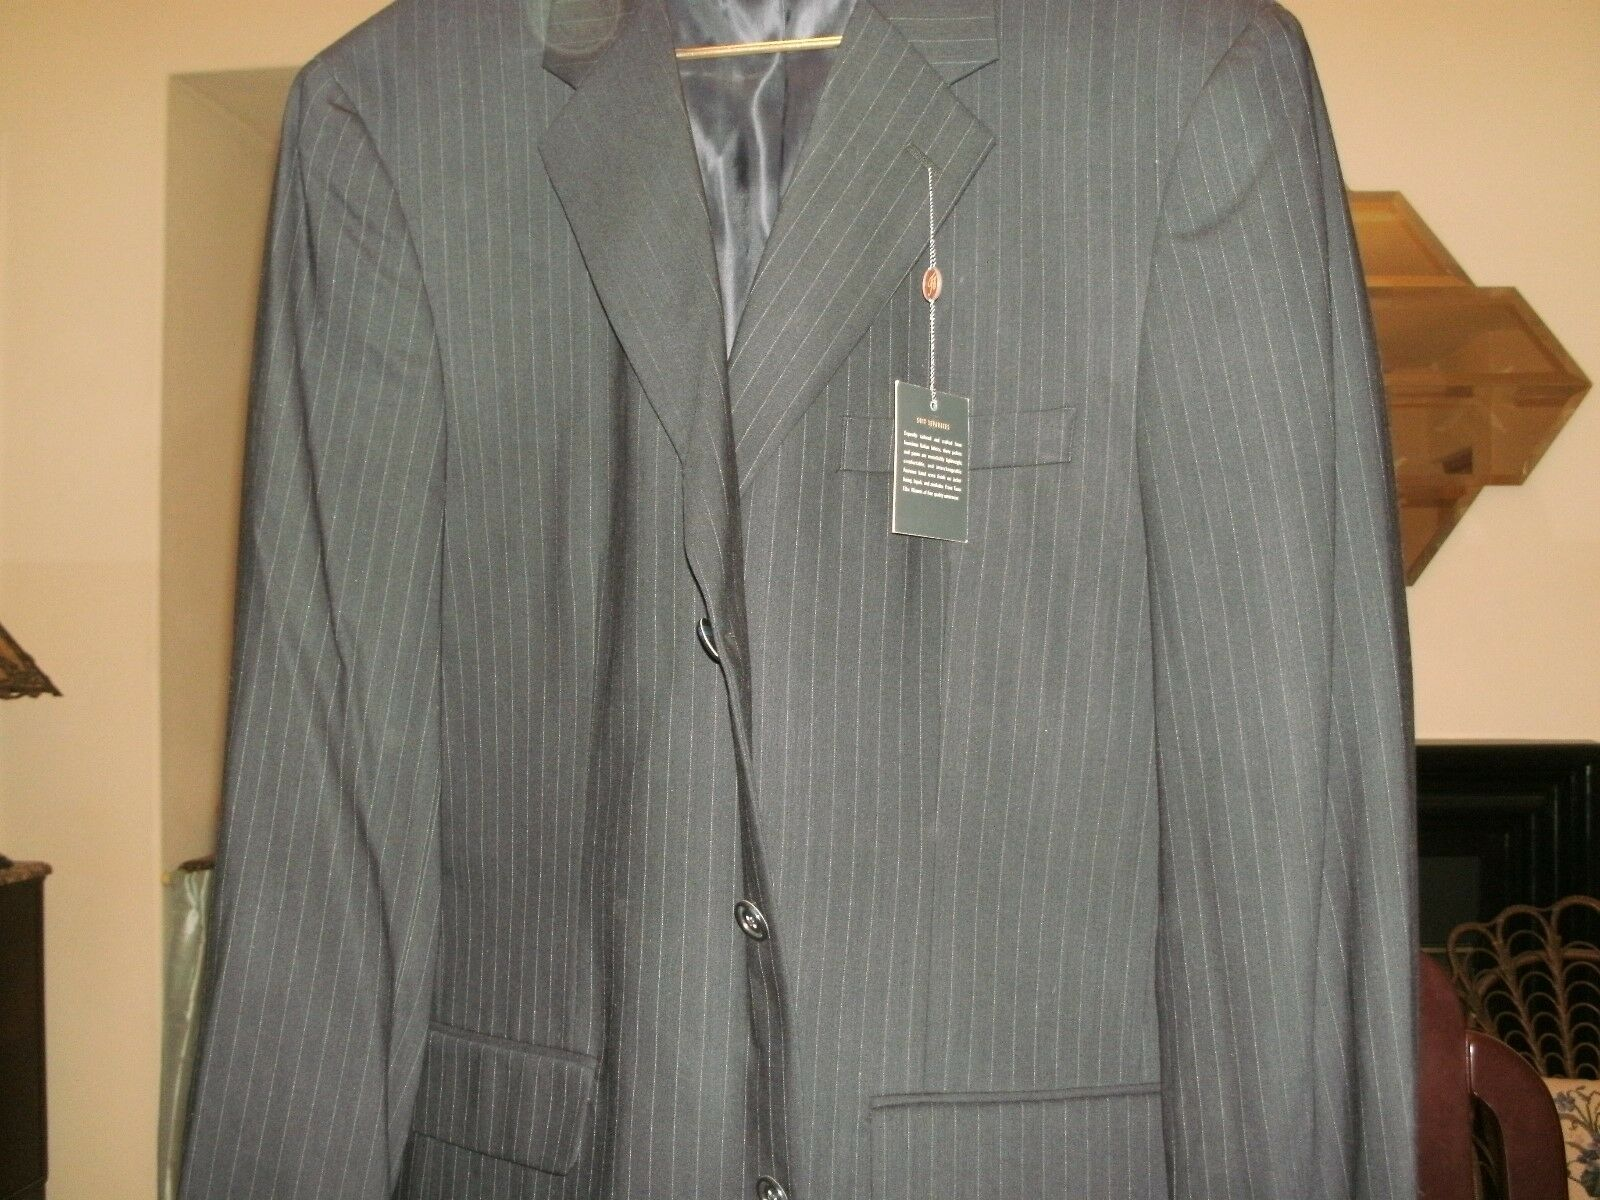 TASSO ELBA SPORTCOAT 44L LONG NEW TAUPE NEW WITH TAGS 400 ITEM DARKER SEE PIC